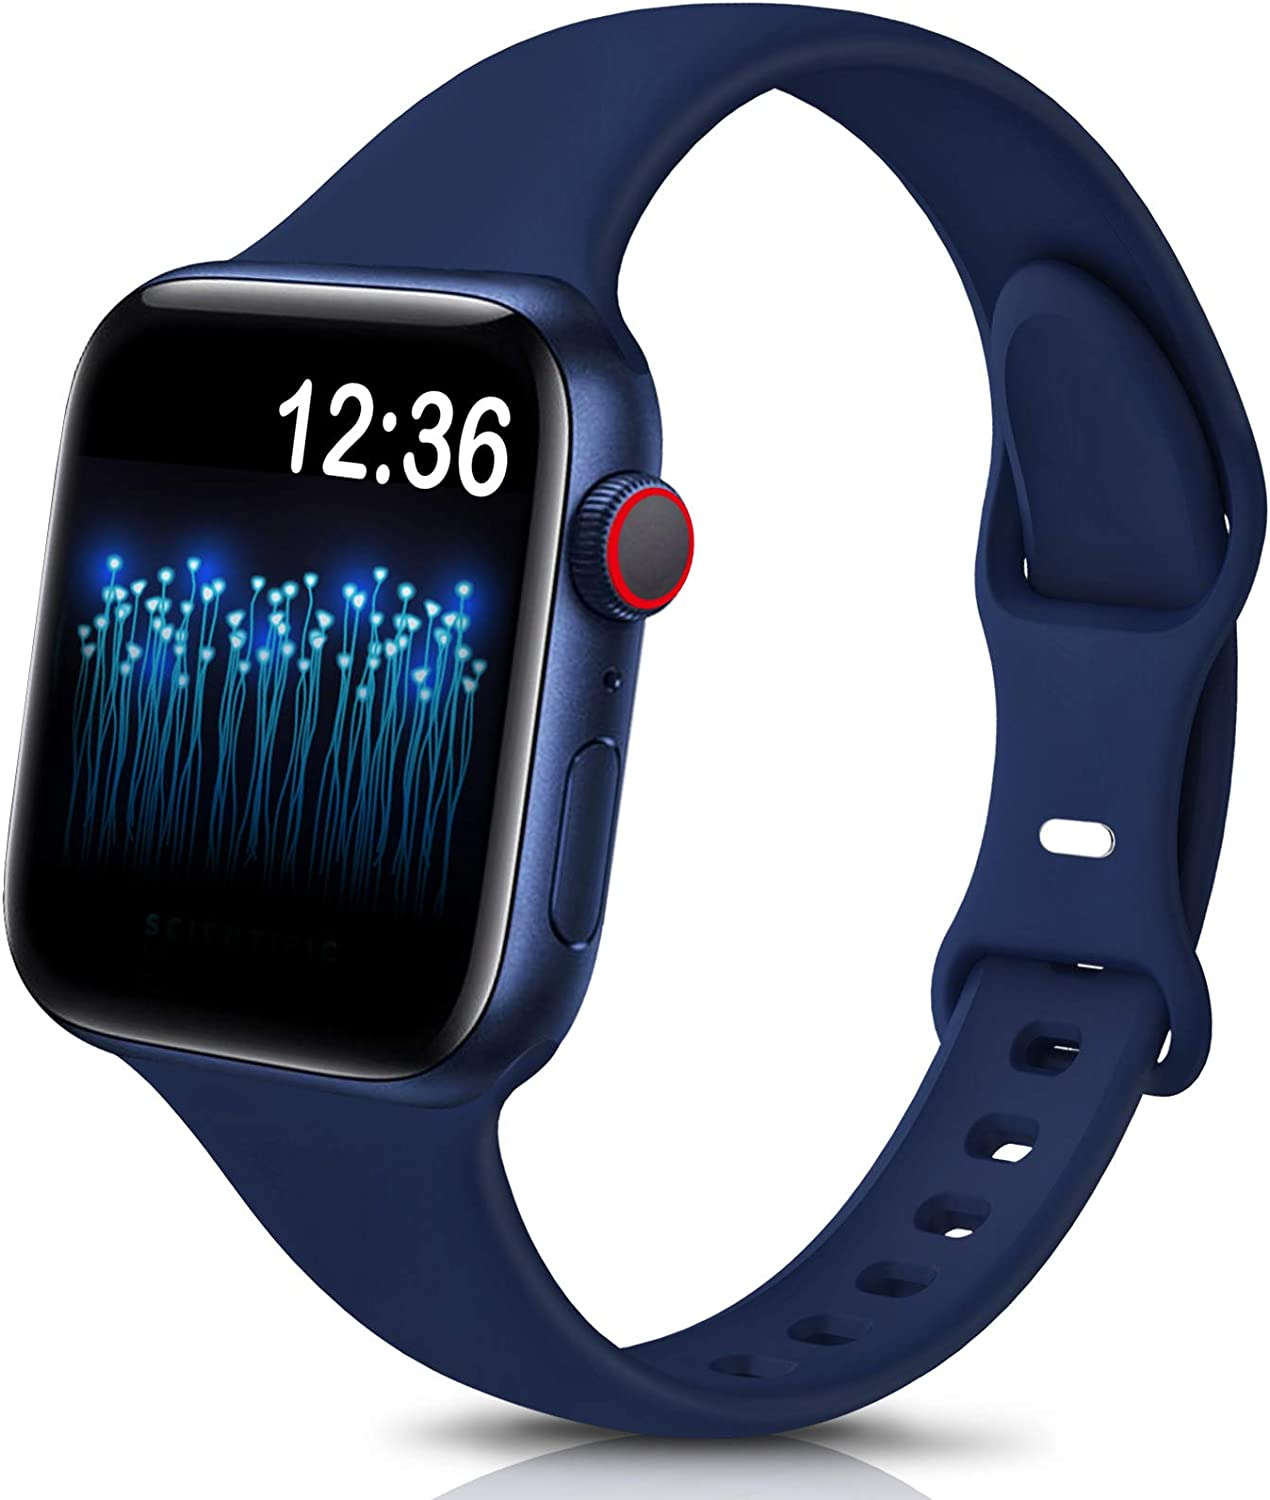 Sport Band Compatible with Apple Watch Bands 38mm 40mm 42mm 44mm,Soft Silicone Narrow Slim Thin Small Strap Wristbands for Iwatch Series 6 5 4 3 2 1 SE, Women Men